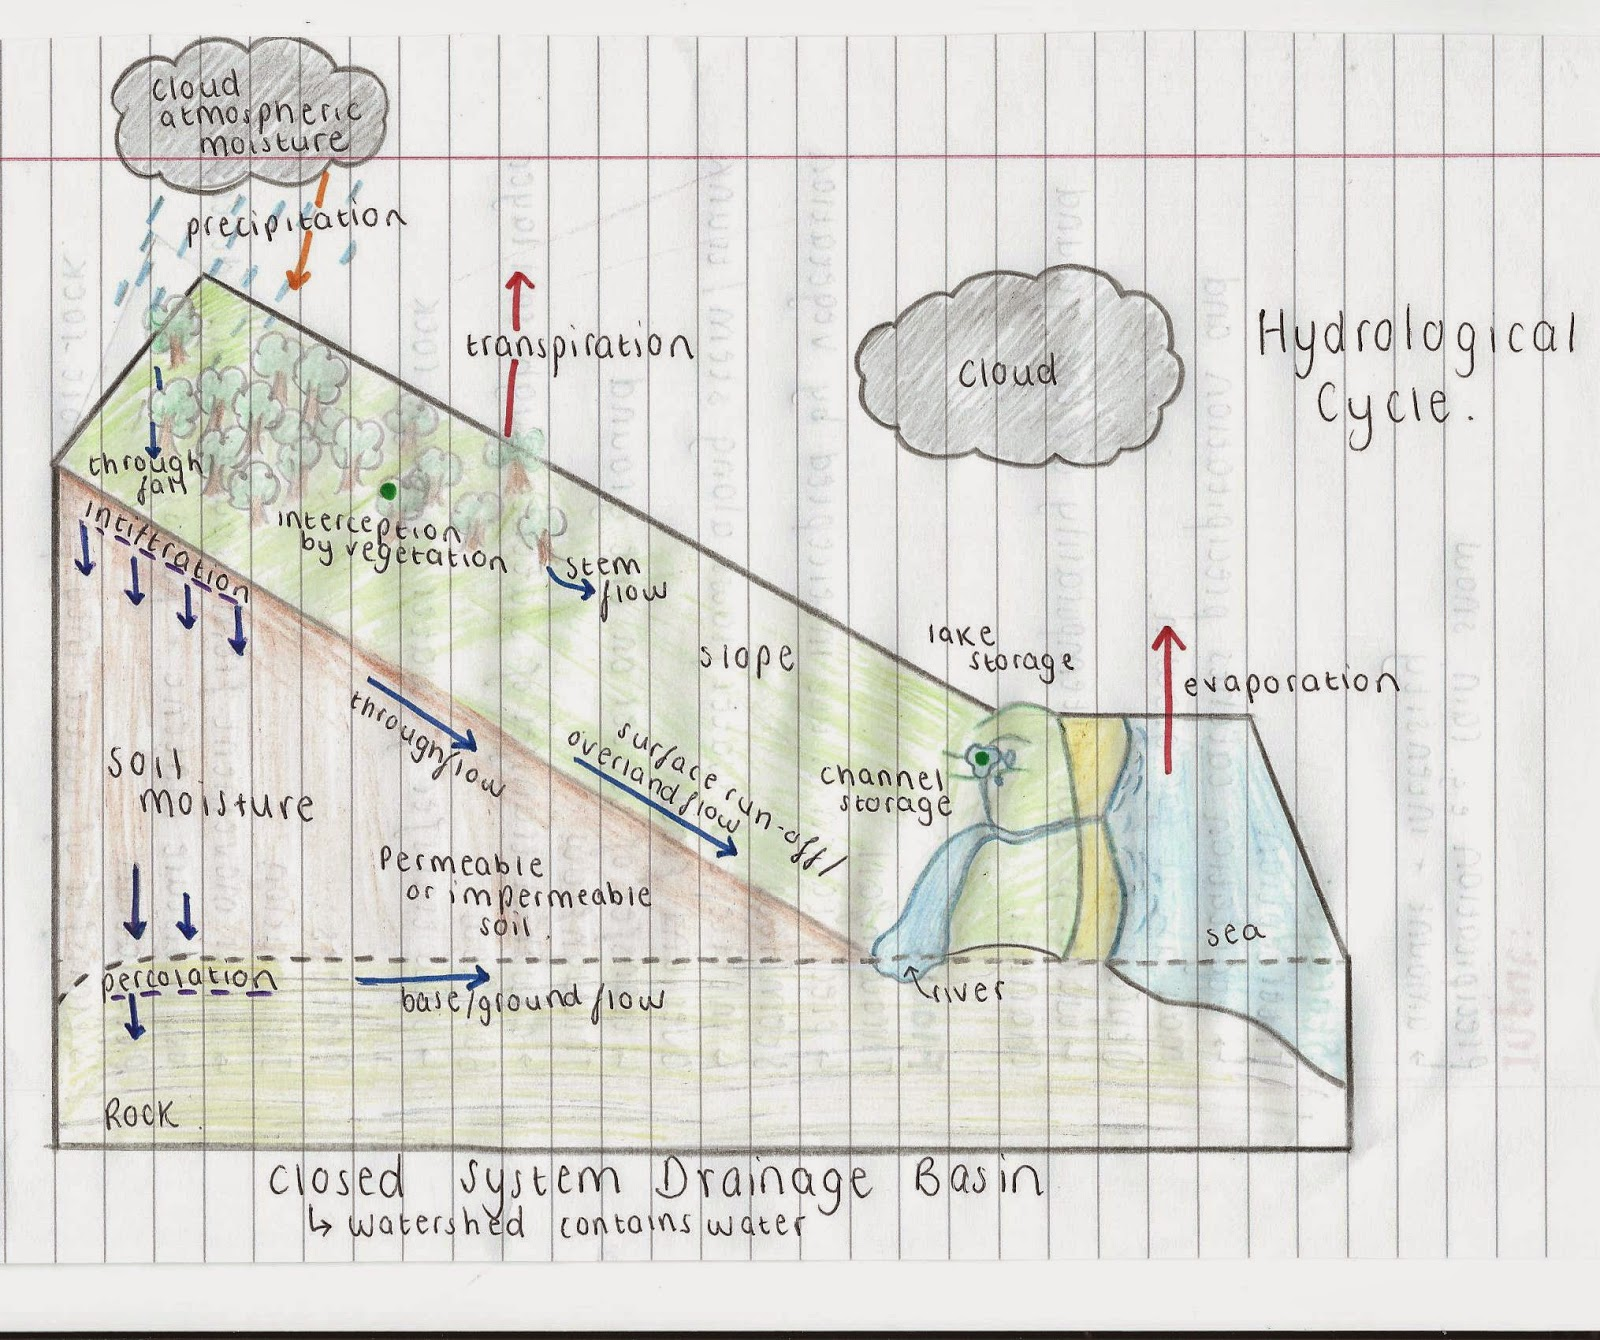 glaciers and climate change environmental sciences essay Is climate change a myth environmental sciences essay  we will write a custom essay sample on any topic specifically  thaw of the ice caps and glaciers.